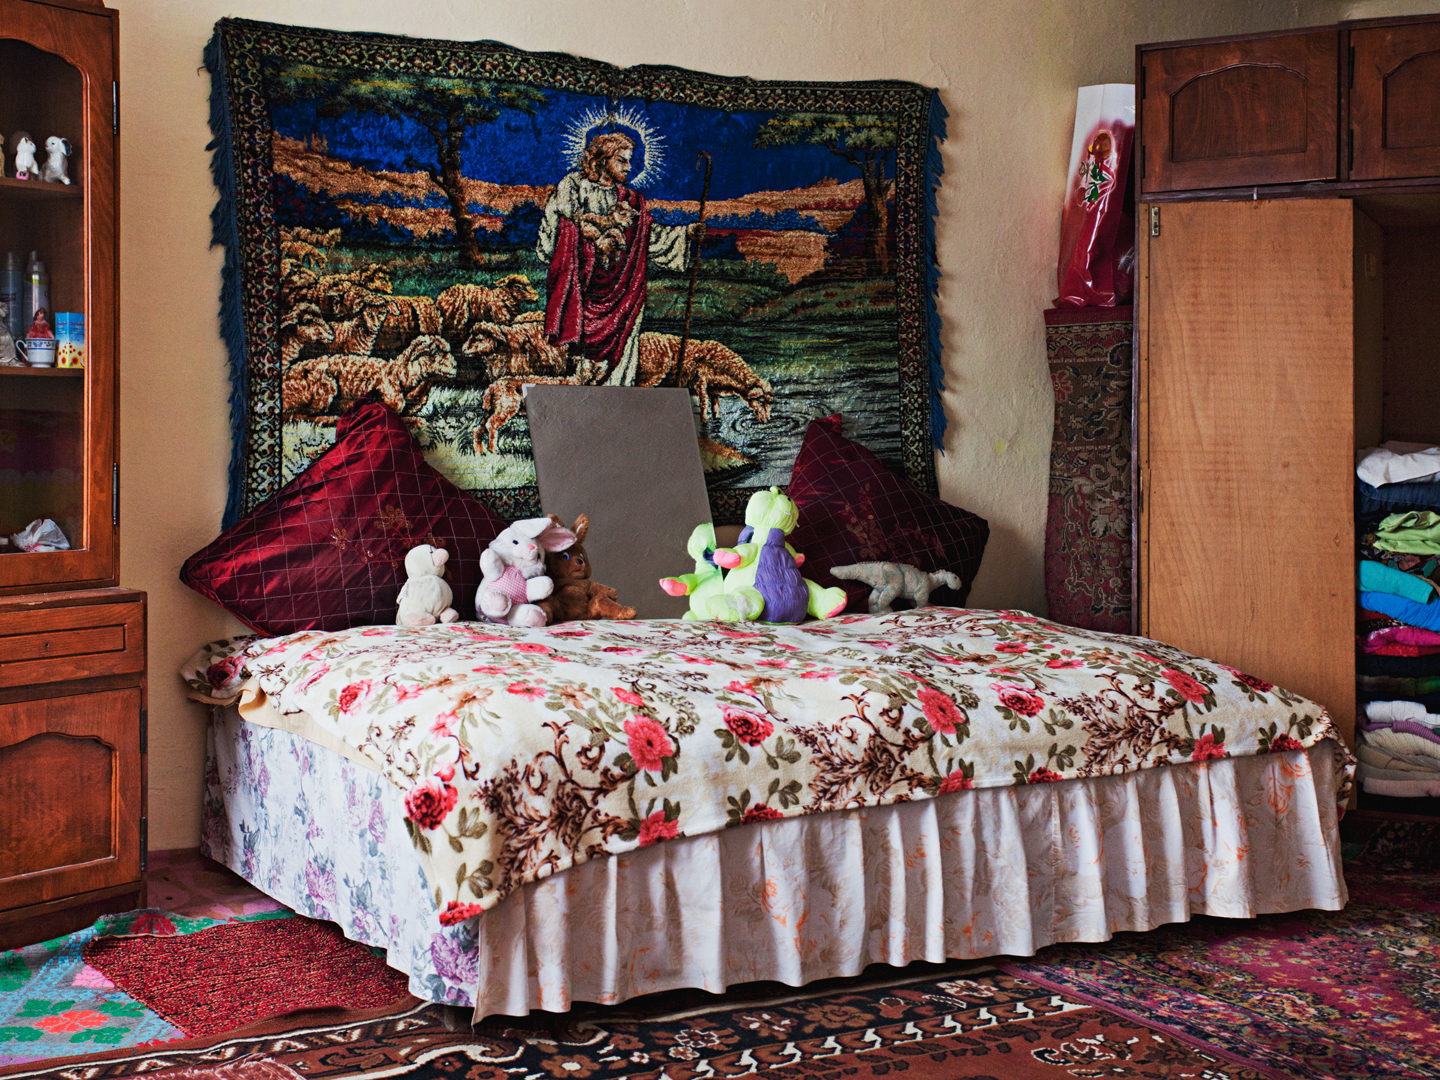 Laurentiu's Marital Bedroom : Be Good is a series about underage married Roma teenagers from Romania